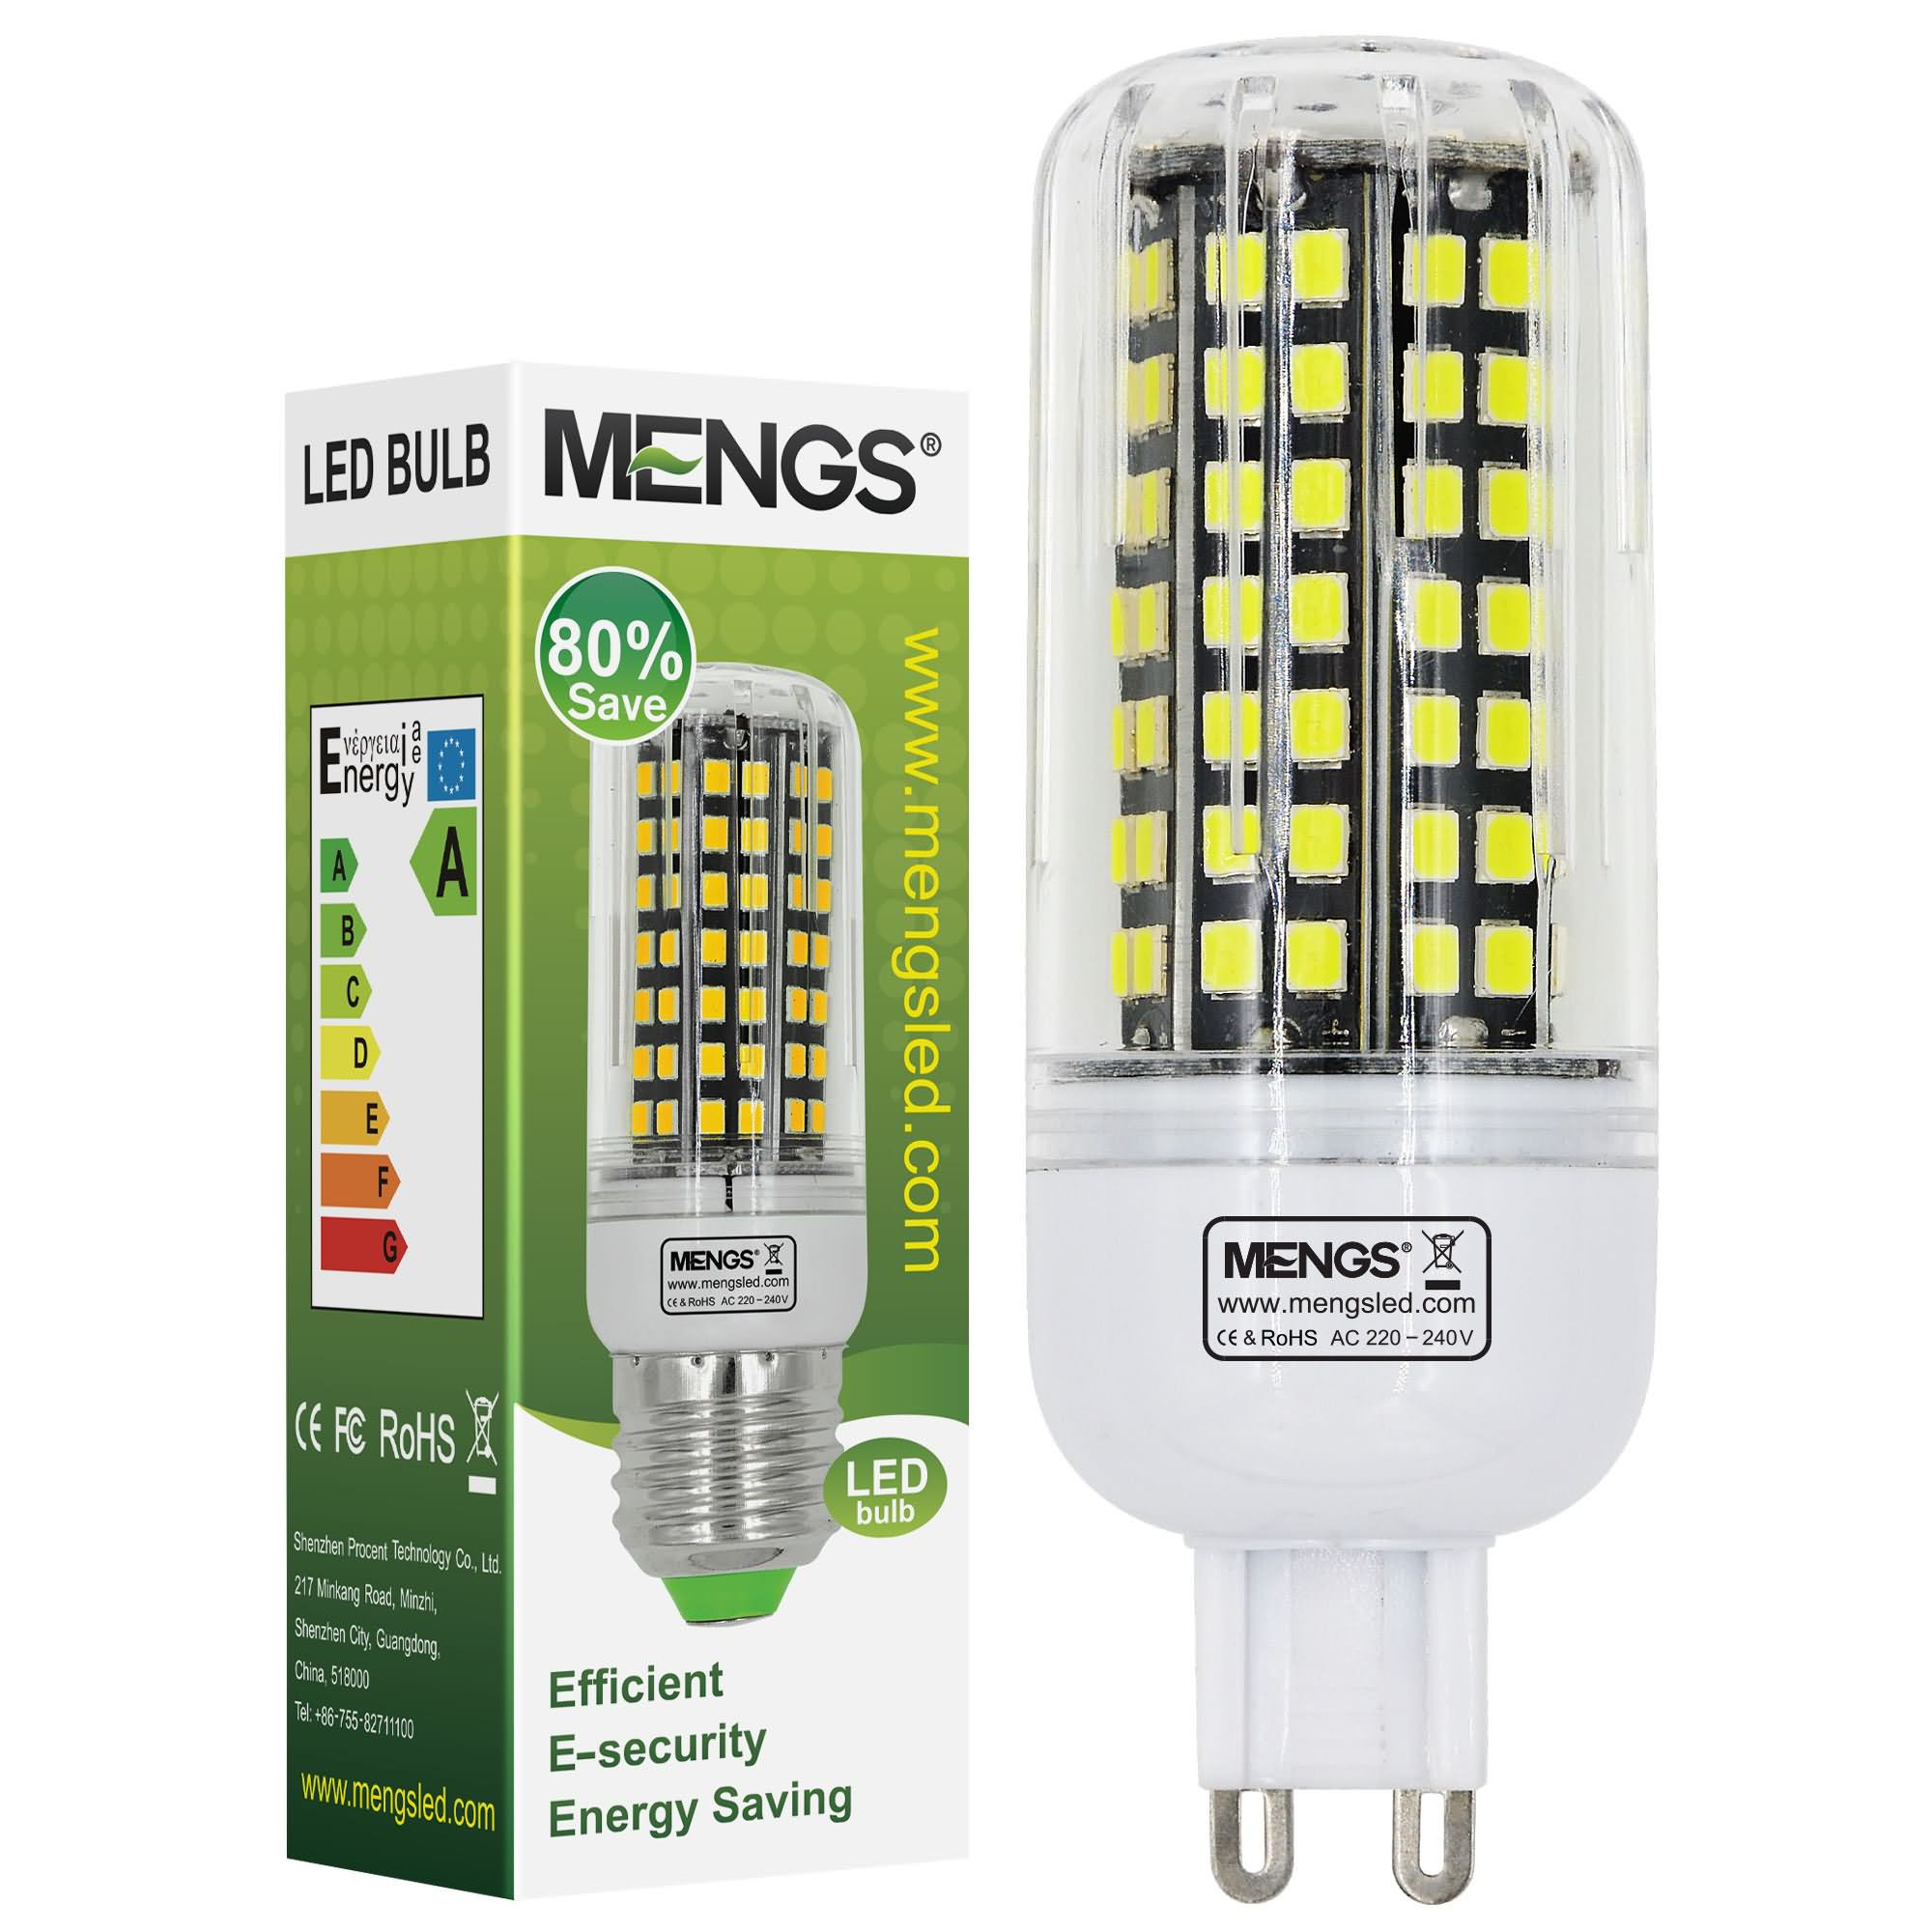 MENGS® G9 10W LED Corn Light 112x 2835 SMD LED Lamp With Aluminum Plate In Cool White Energy-Saving Light